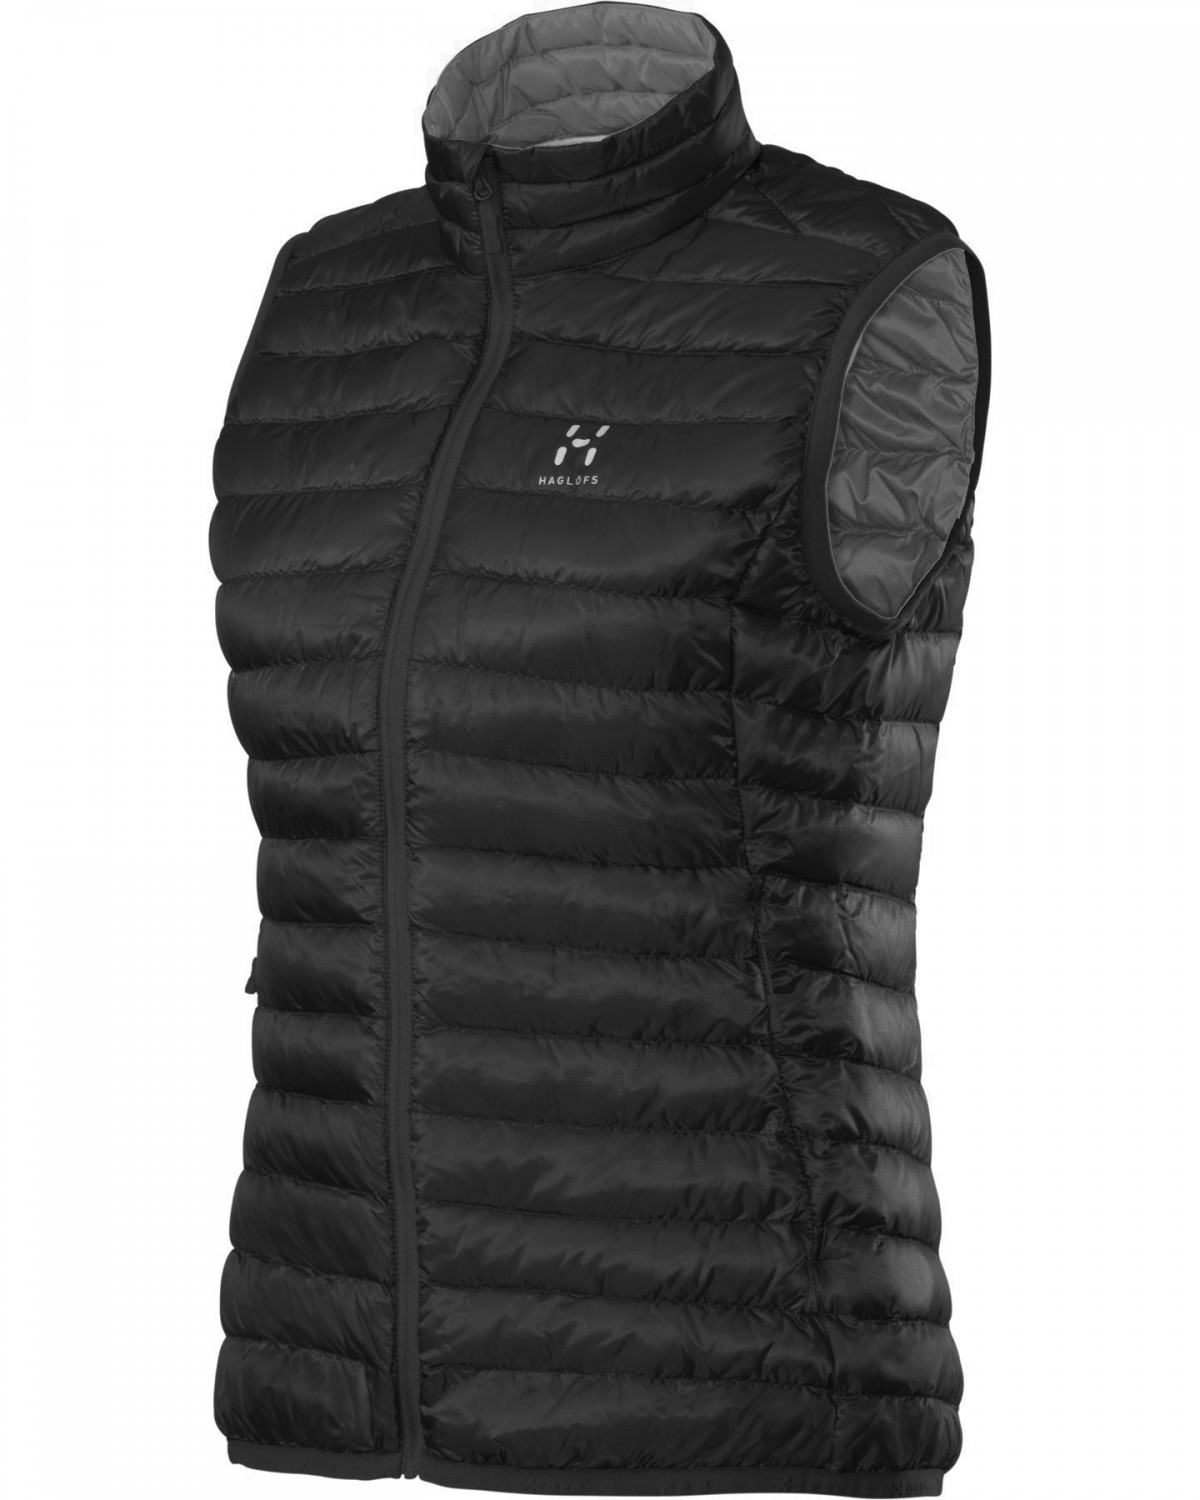 Haglofs - Essens II Down Vest True Black/Magnetite - Isolation & Winter Jackets - XXL